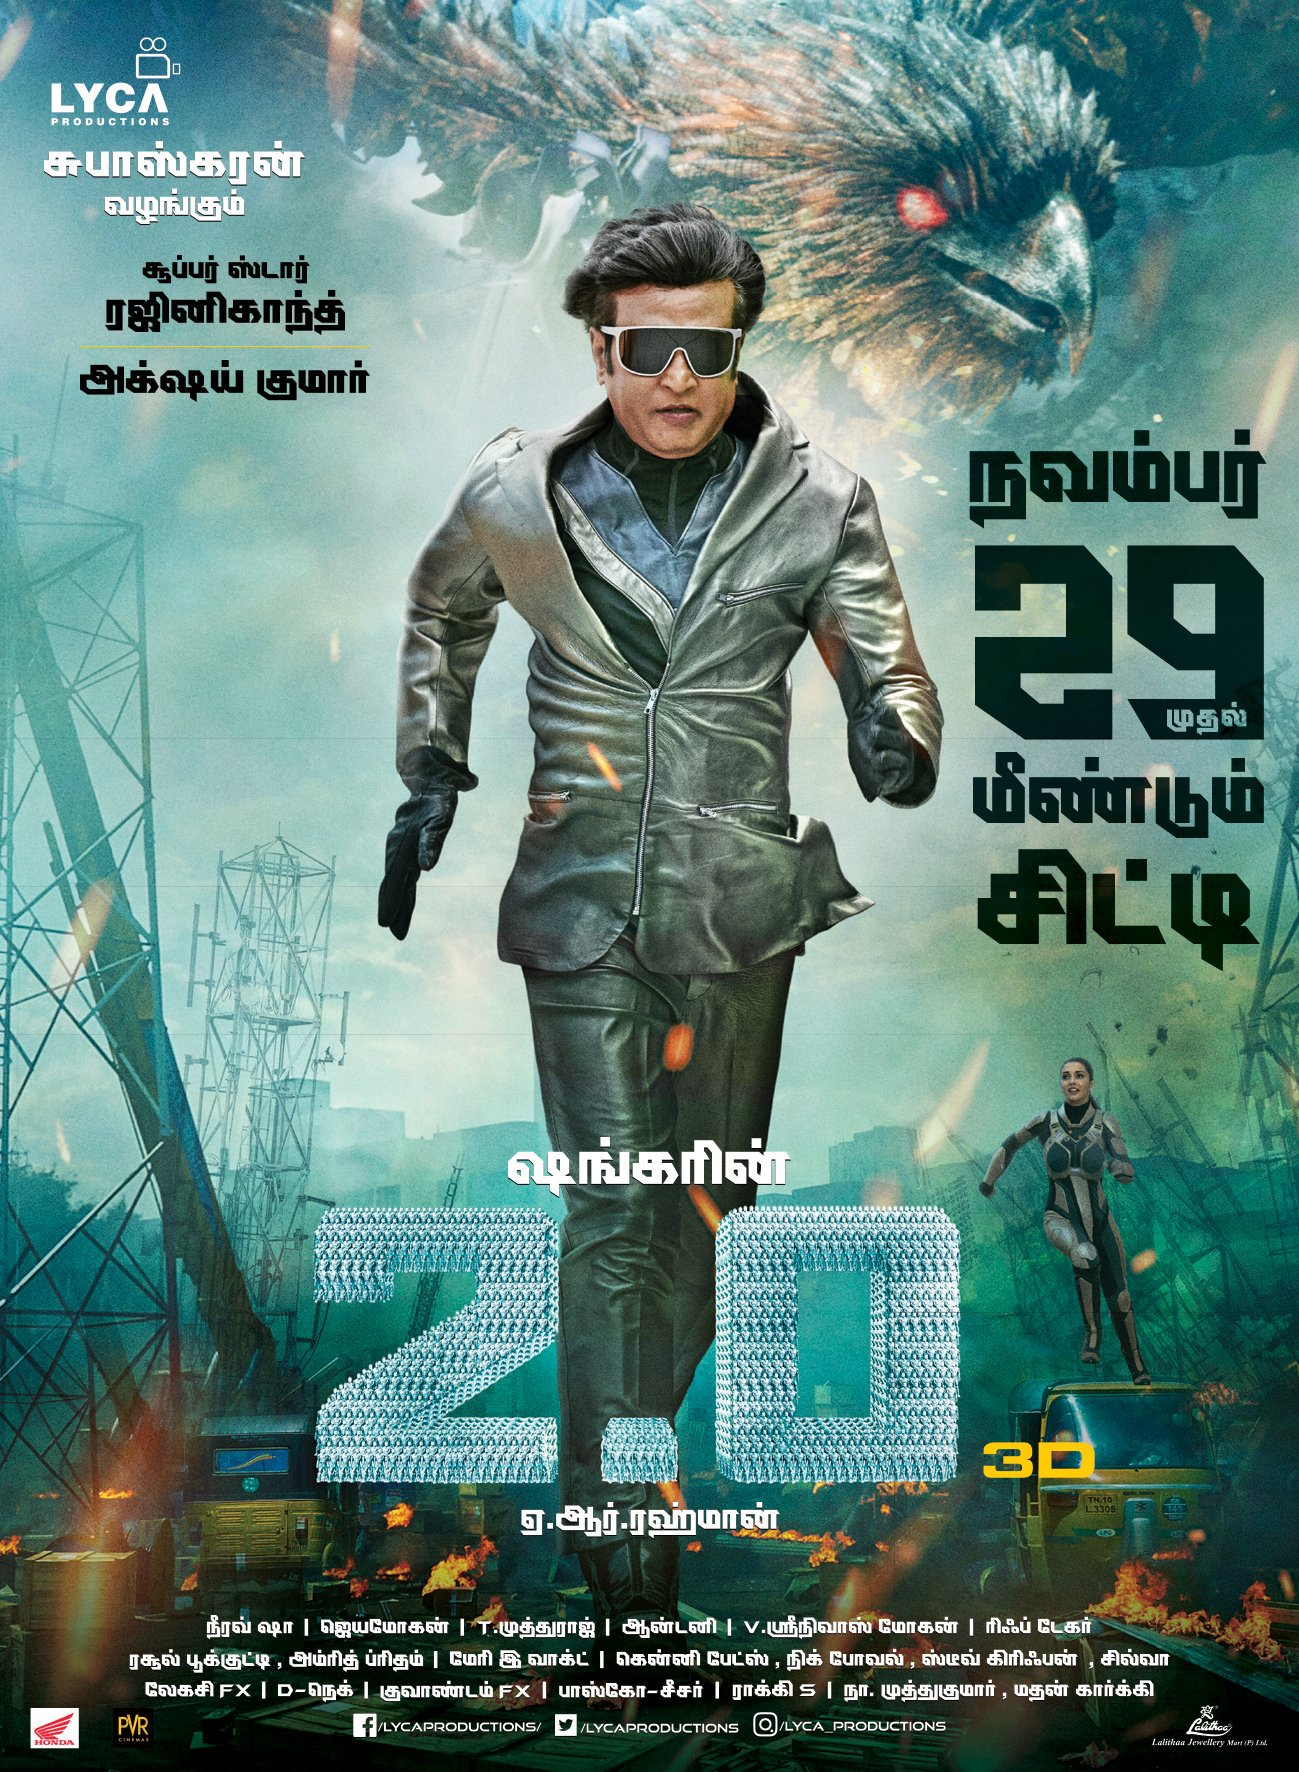 2  Days To Go Hd Posters Social News Xyz Chittiisback 9 Days To Go For 2point0 2point0fromnov29